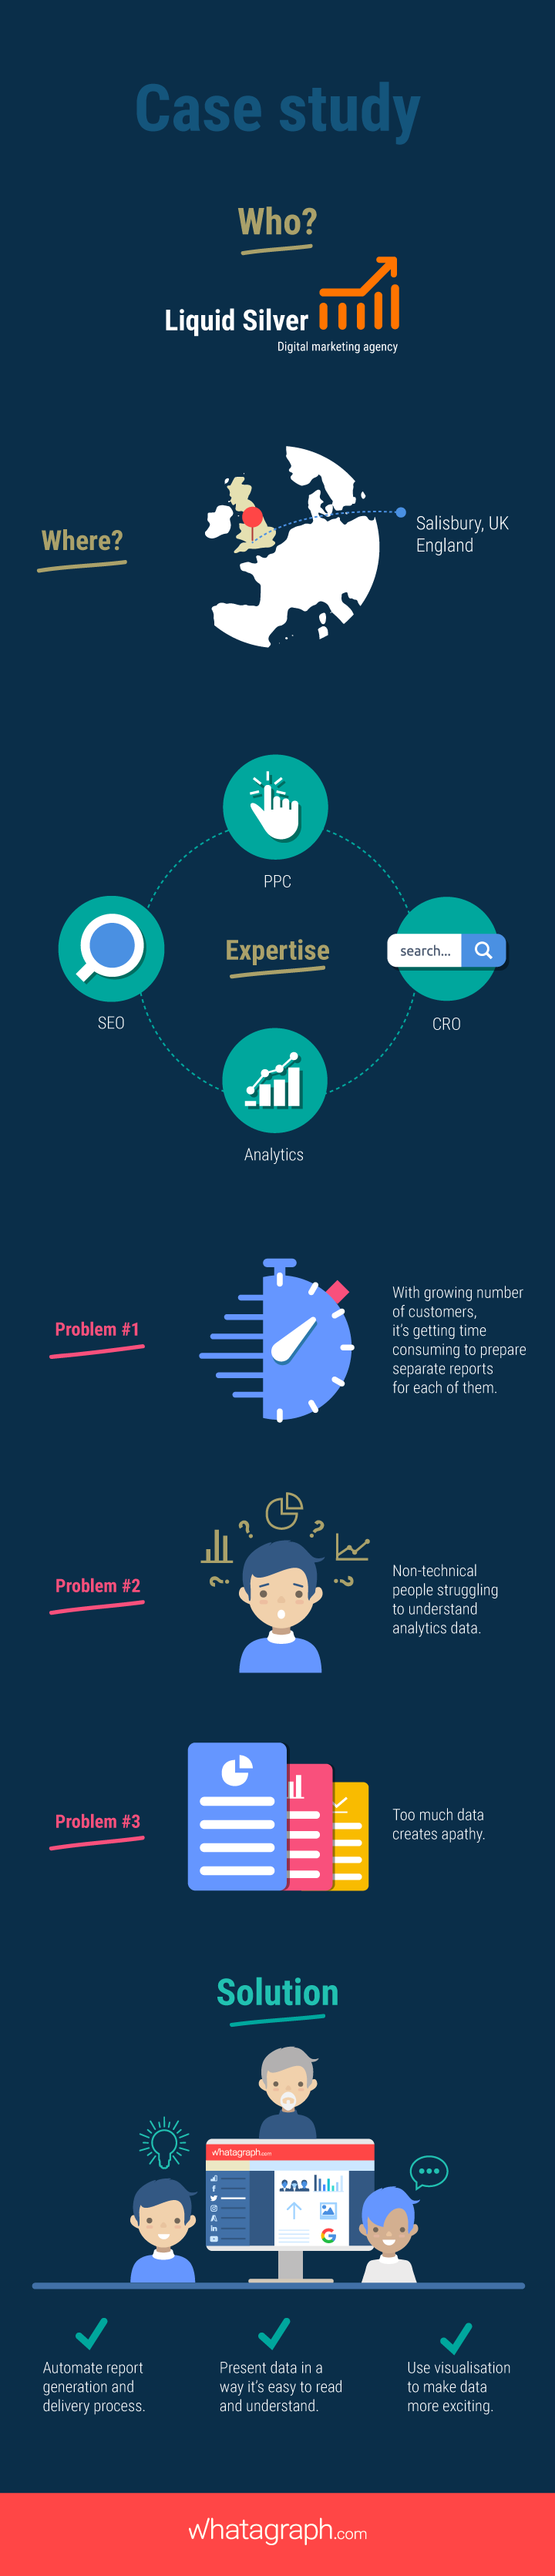 Infographic case study - Whatagraph and analytics reporting